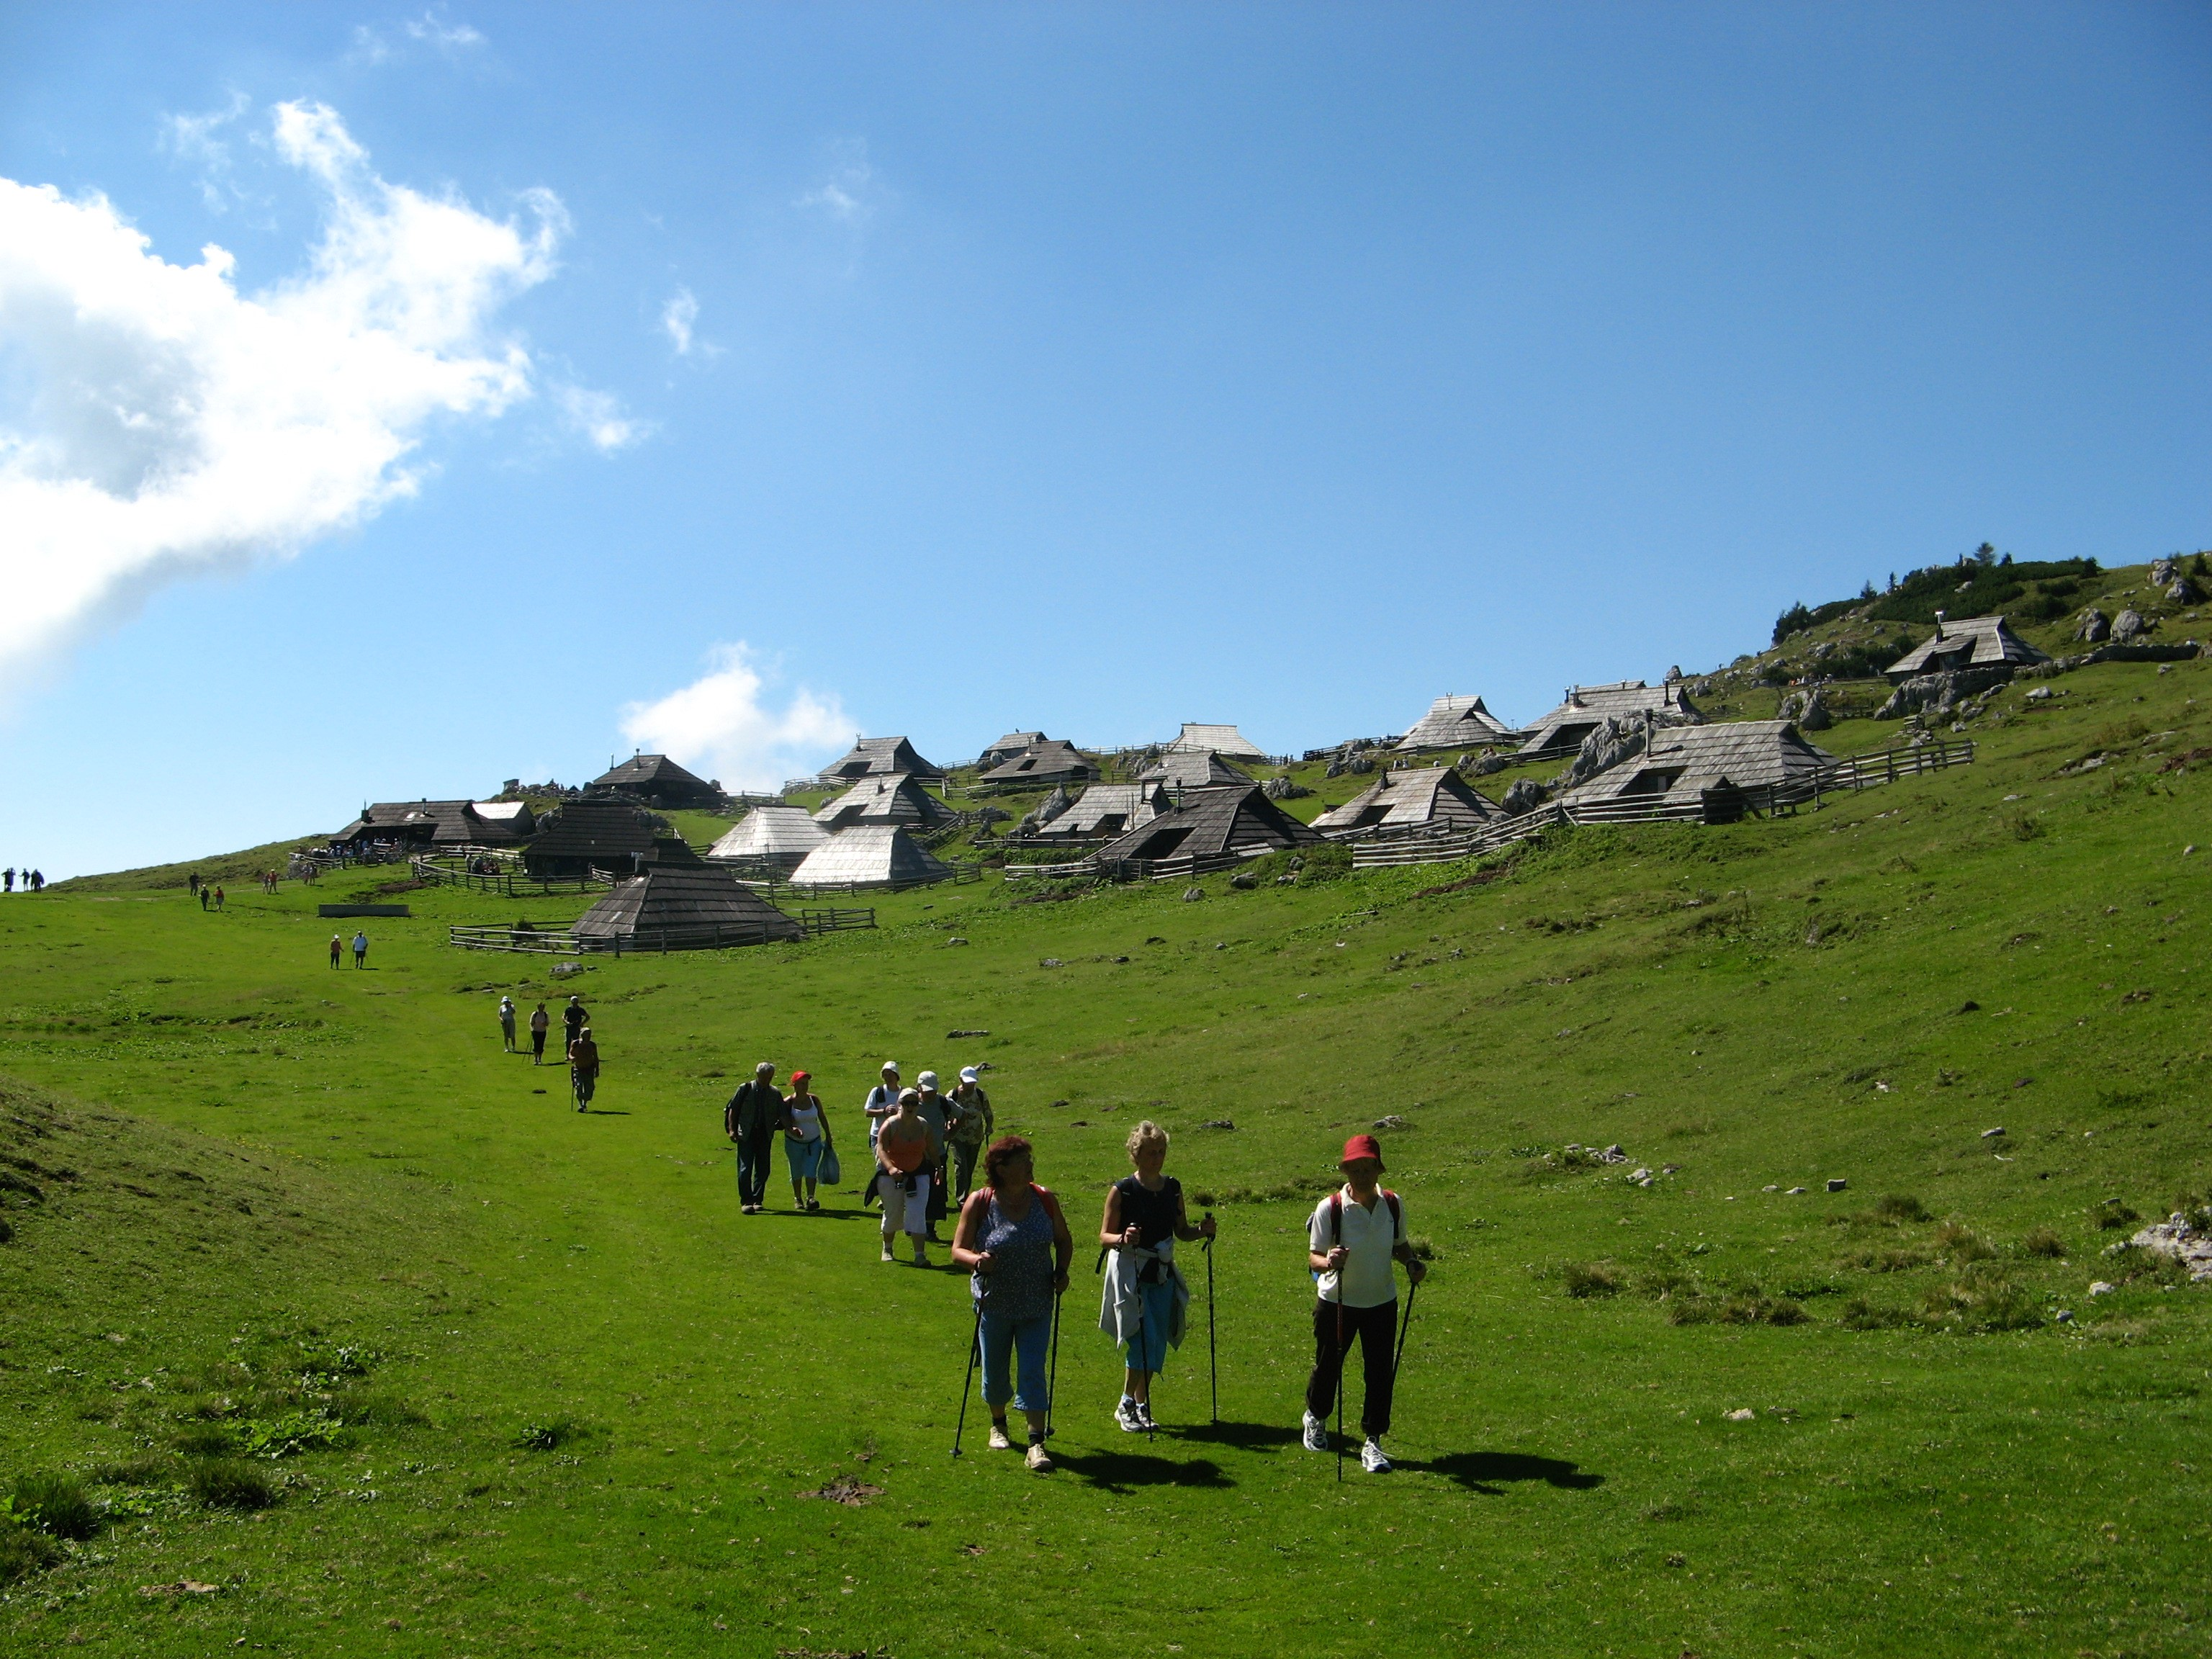 Surroundings - Velika planina